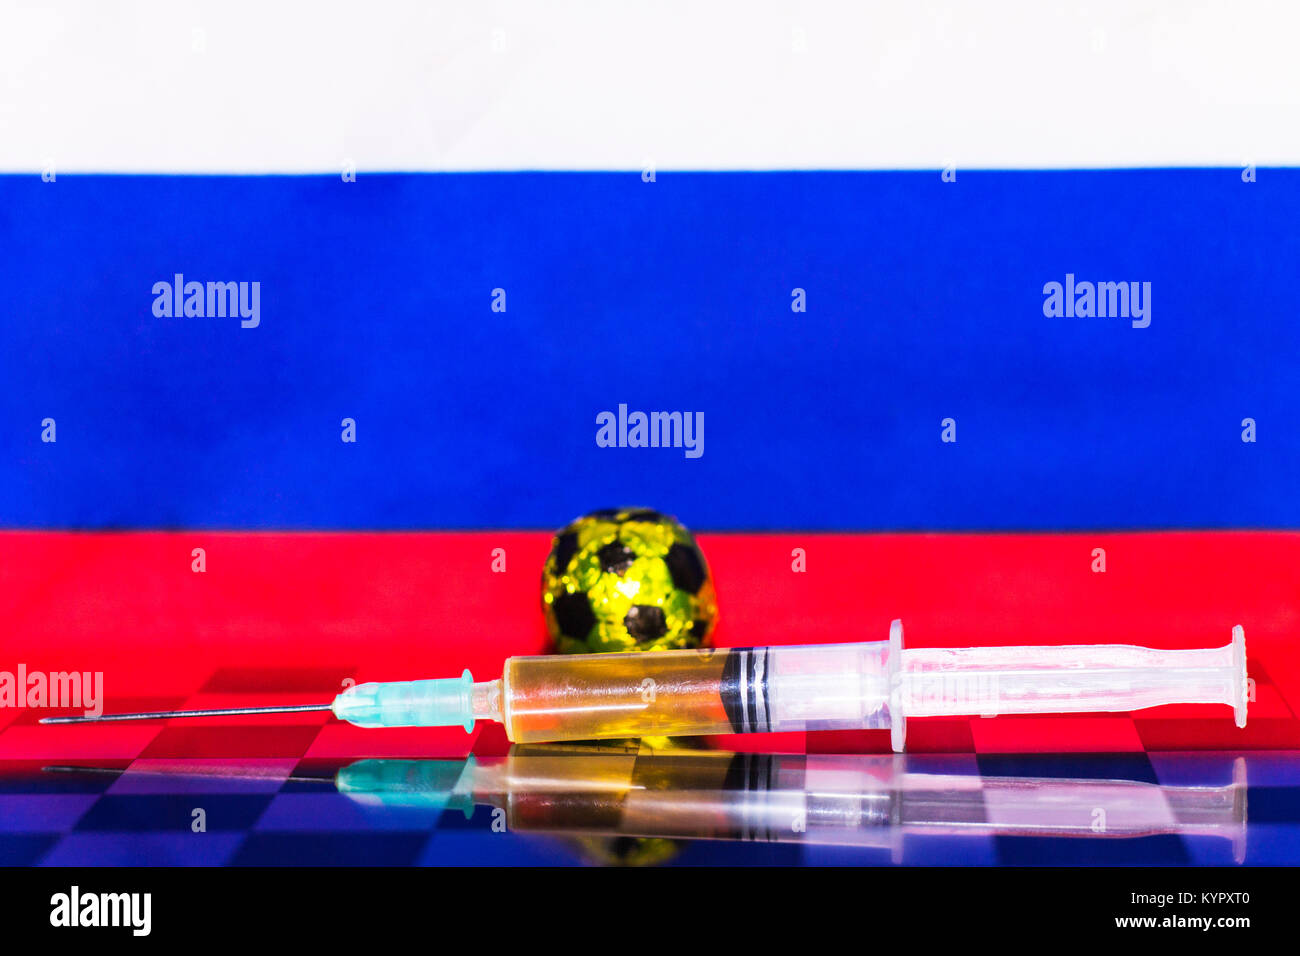 Russia Flag Chess as a football. FIFA World Cup 2018. A golden ball and a syringe with doping. - Stock Image